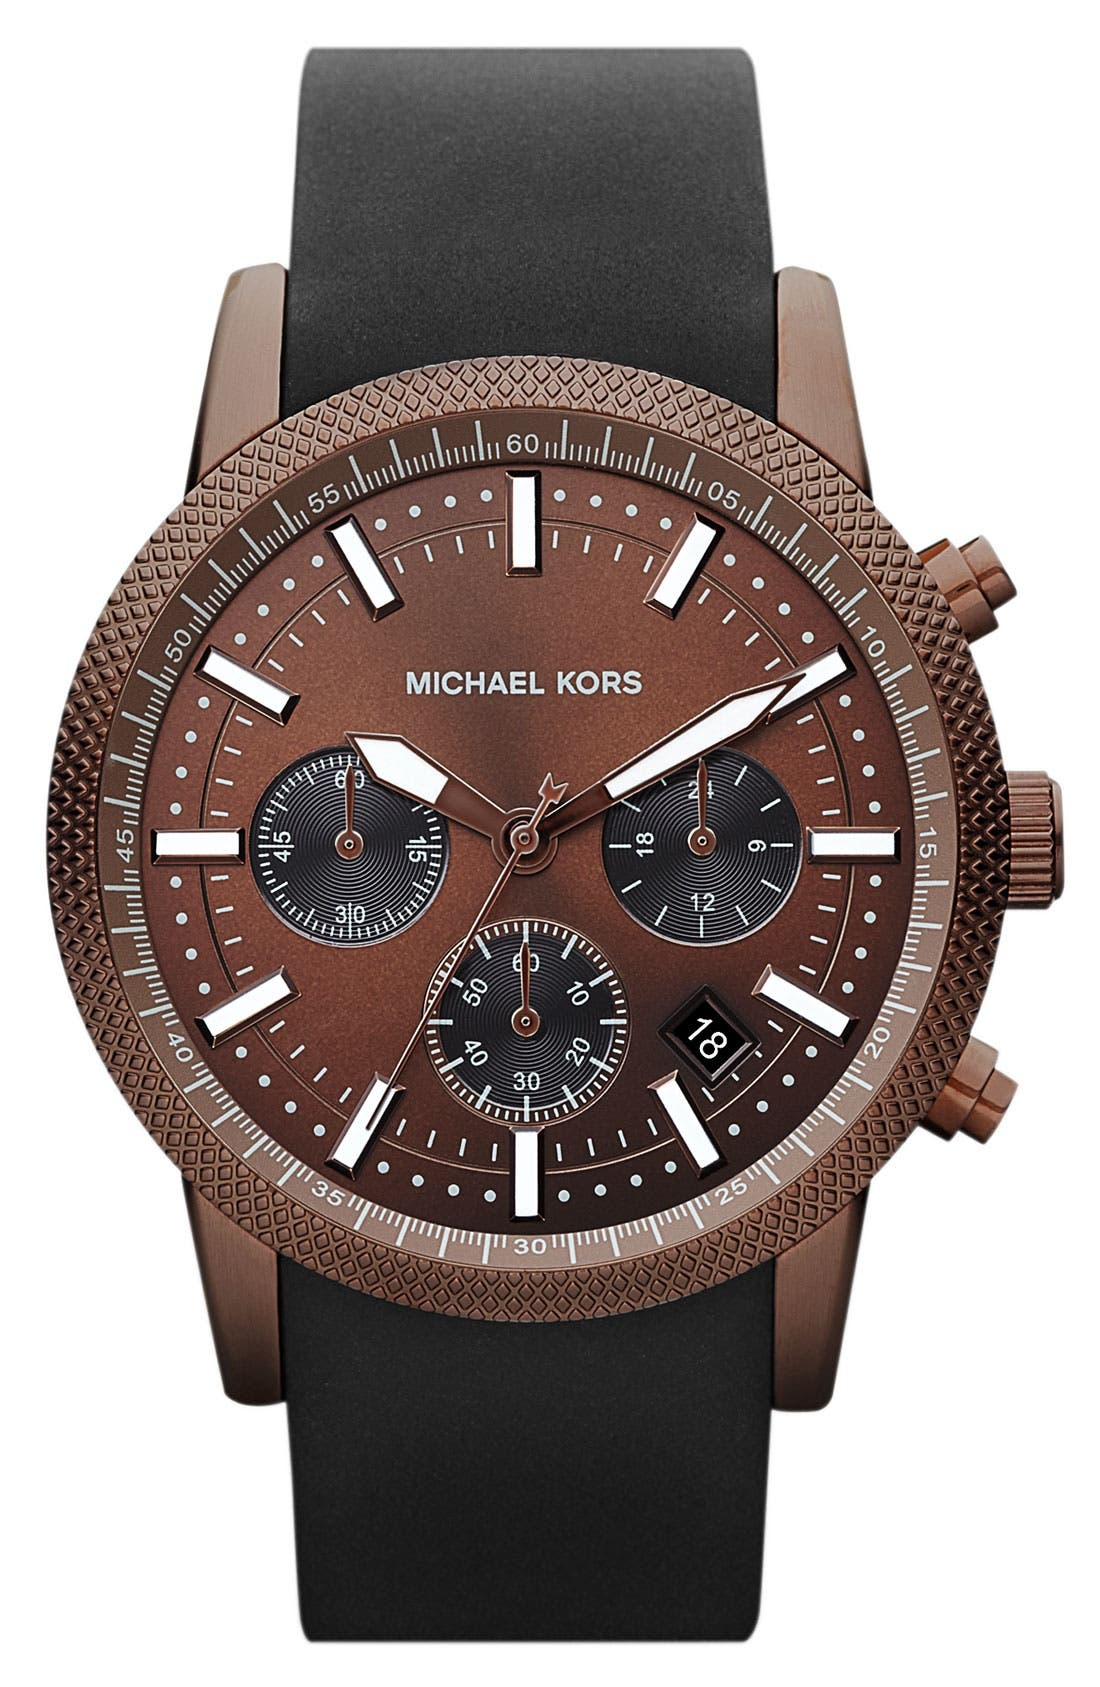 Main Image - Michael Kors 'Scout' Chronograph Watch